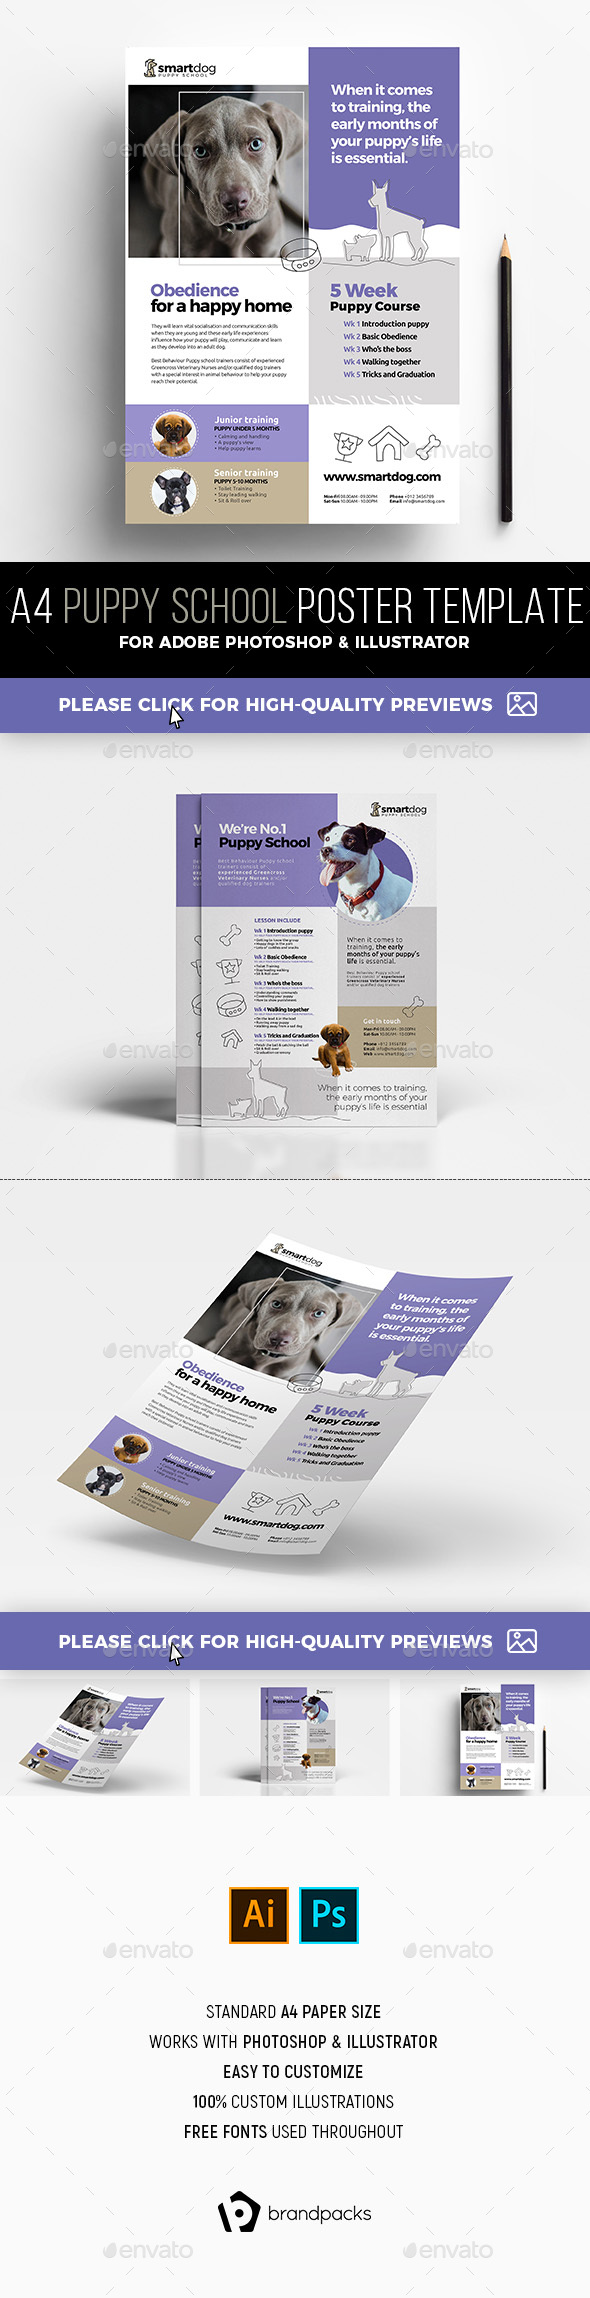 A4 Puppy School Poster Templates - Commerce Flyers